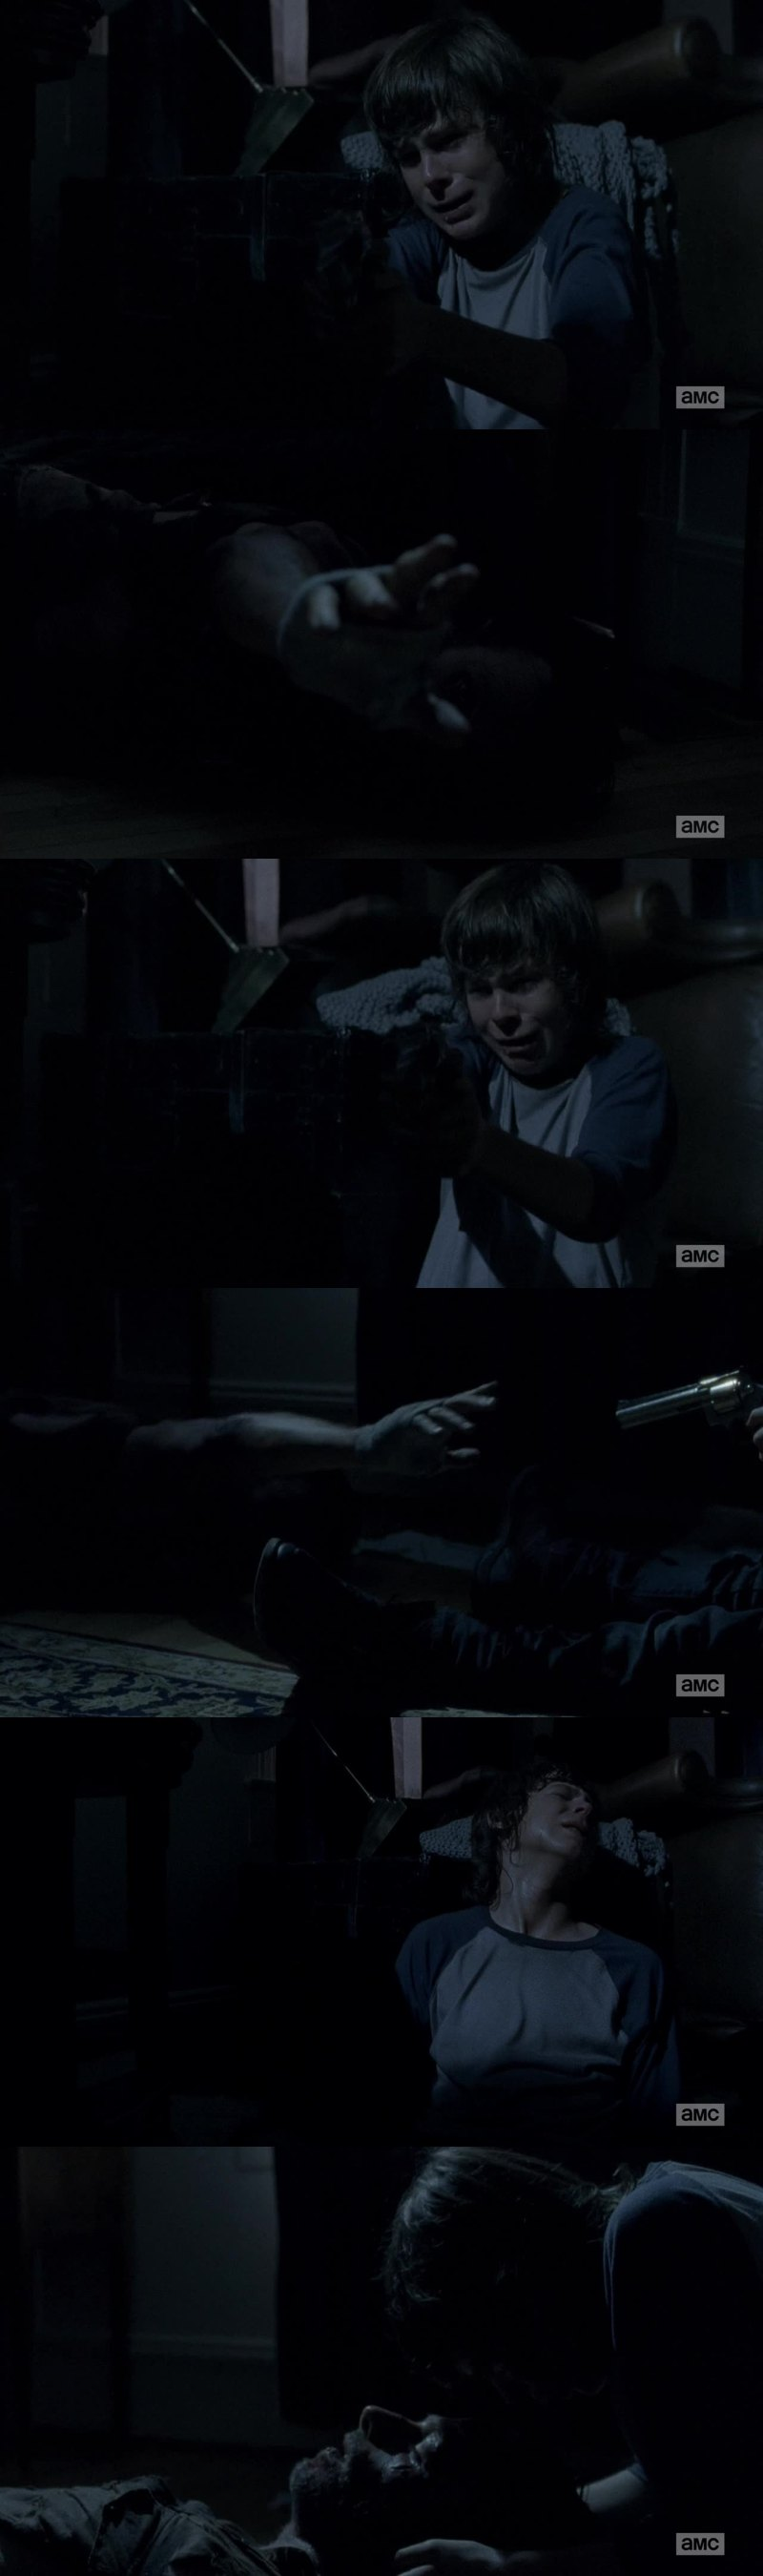 """For me, this was the best scene in this serie. Carl was willing to give up his own life to not kill his father. There is no better serie that """"The Walking Dead"""""""